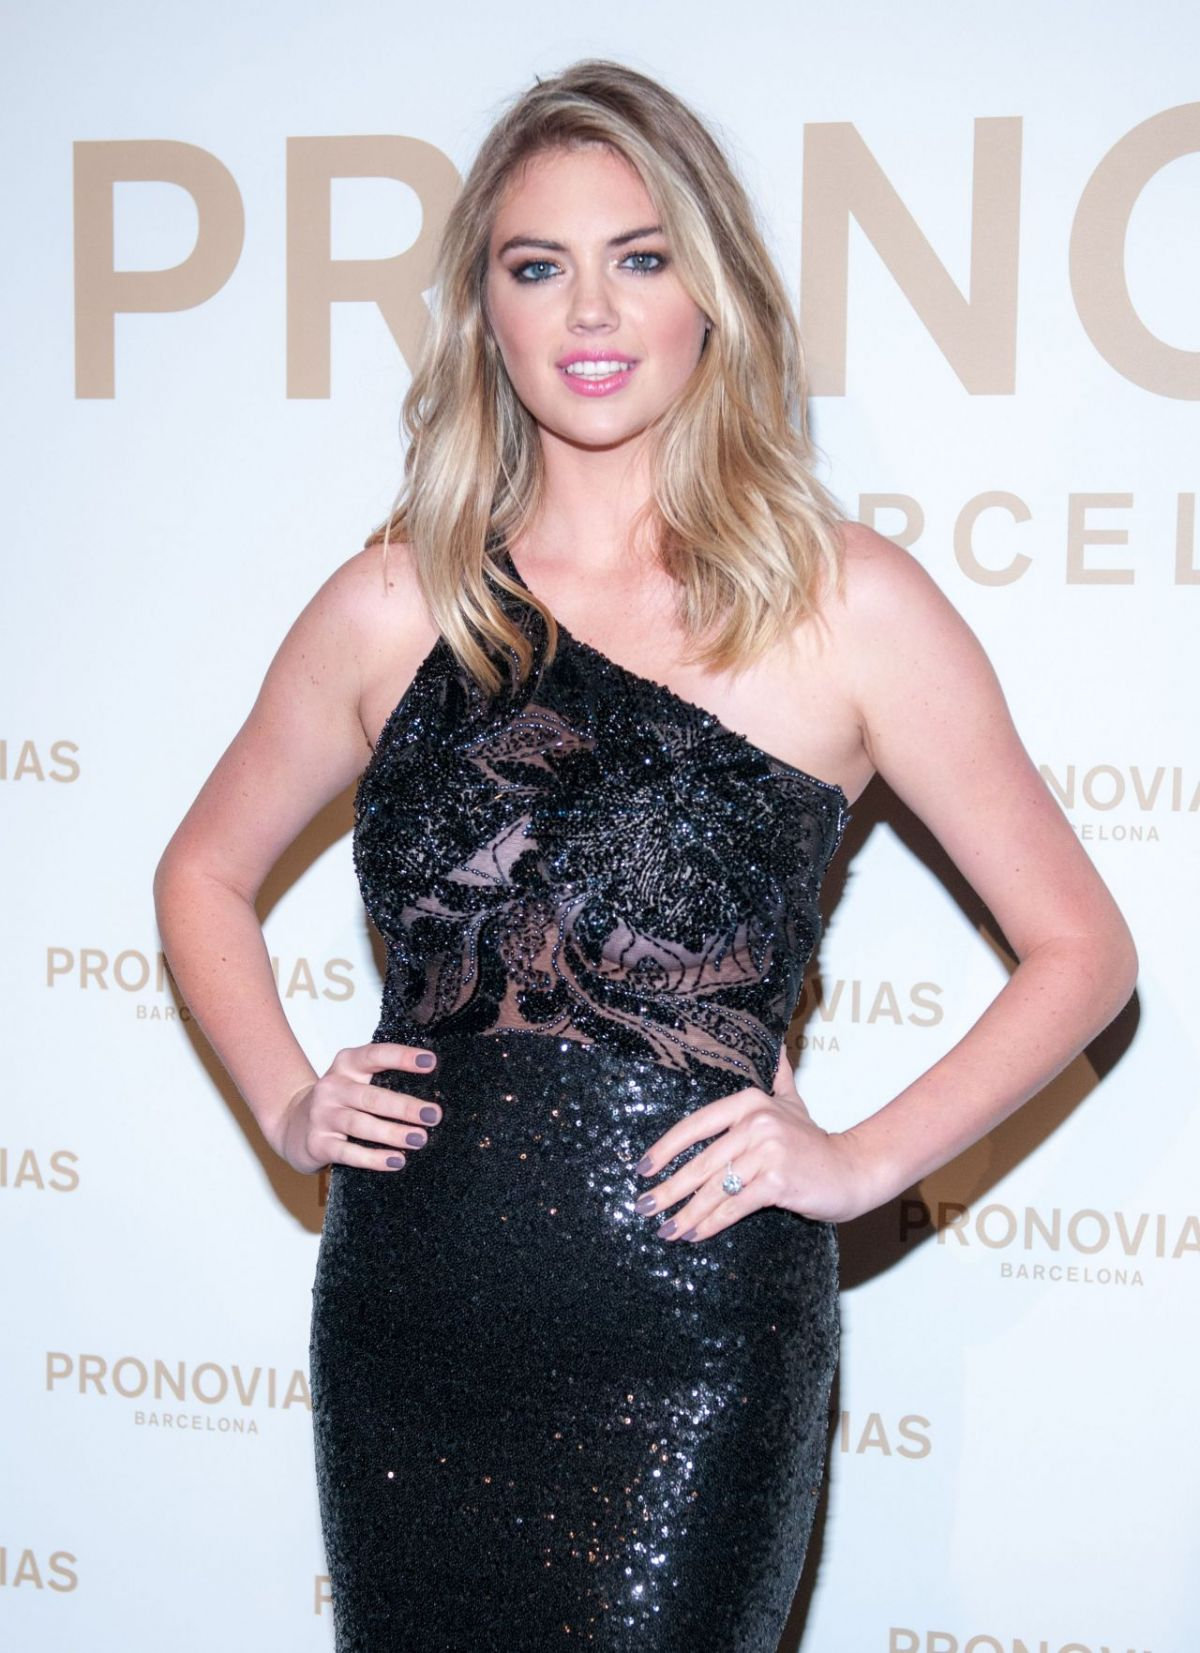 Kate Upton At Barcelona Photocall at the Pronovias Catwalk Show